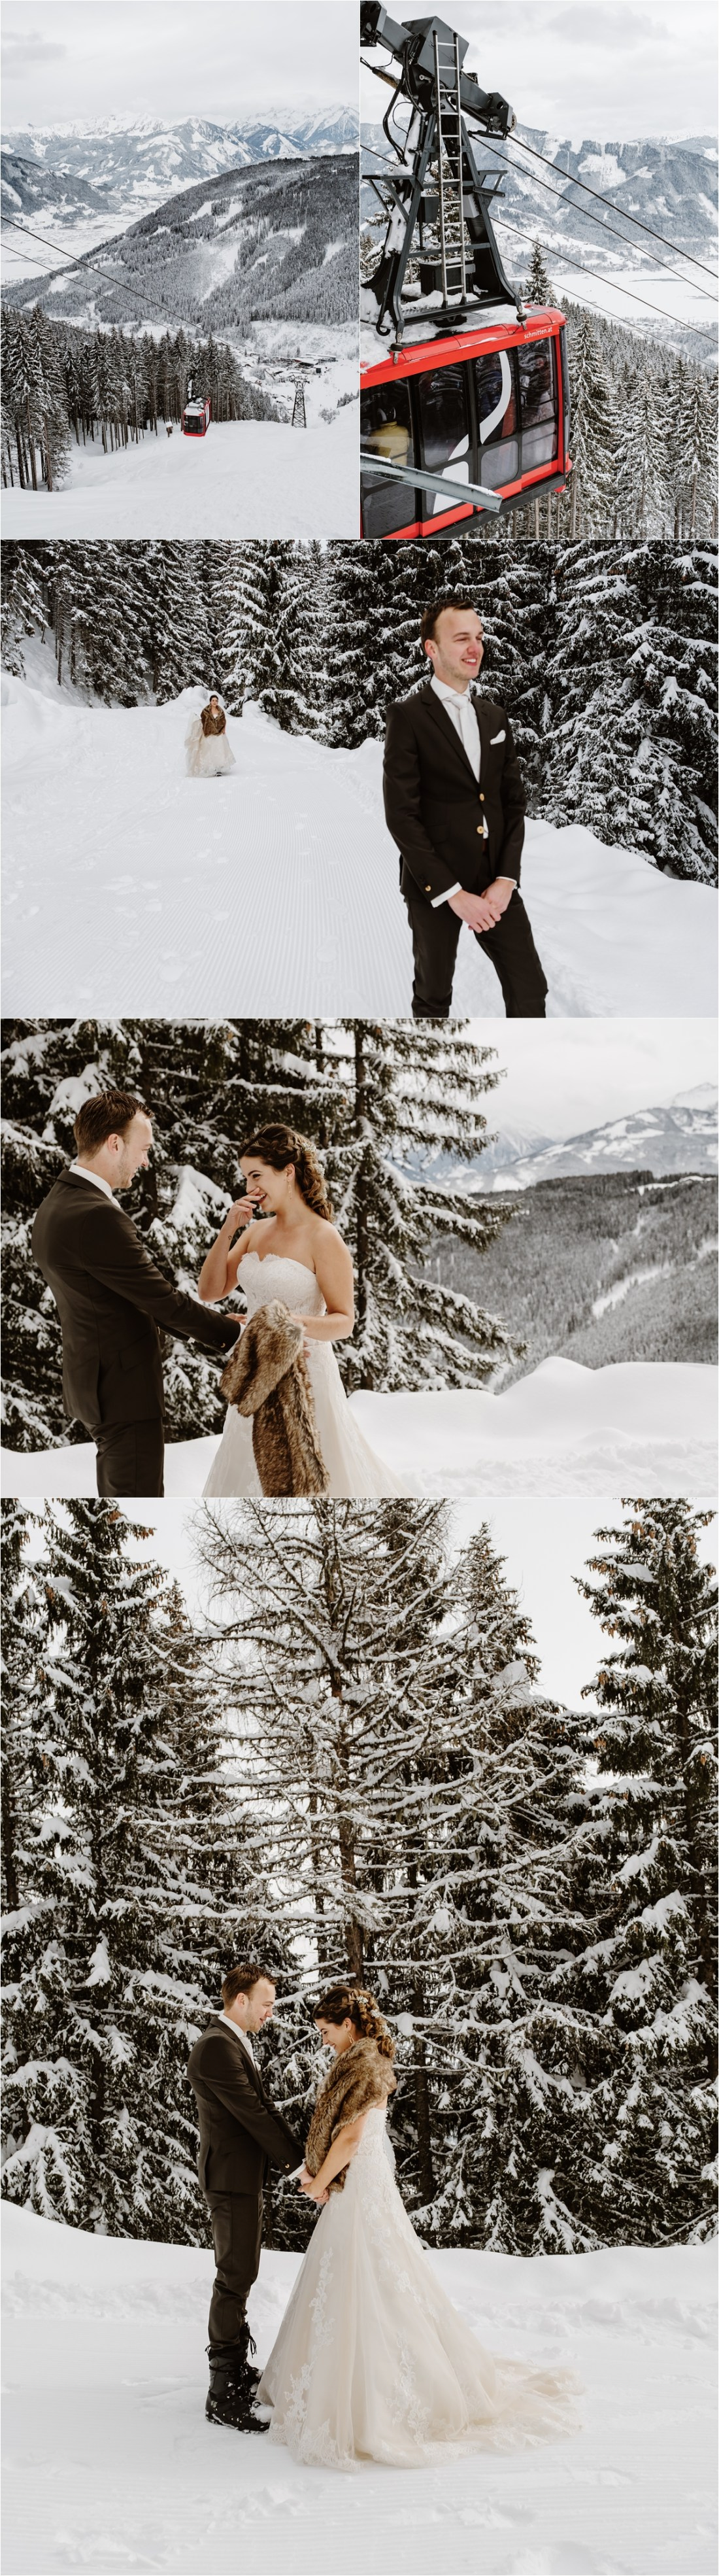 Inge & Martijn have an emotional first look on the mountain in Zell Am See before their snowboard wedding by Wild Connections Photography